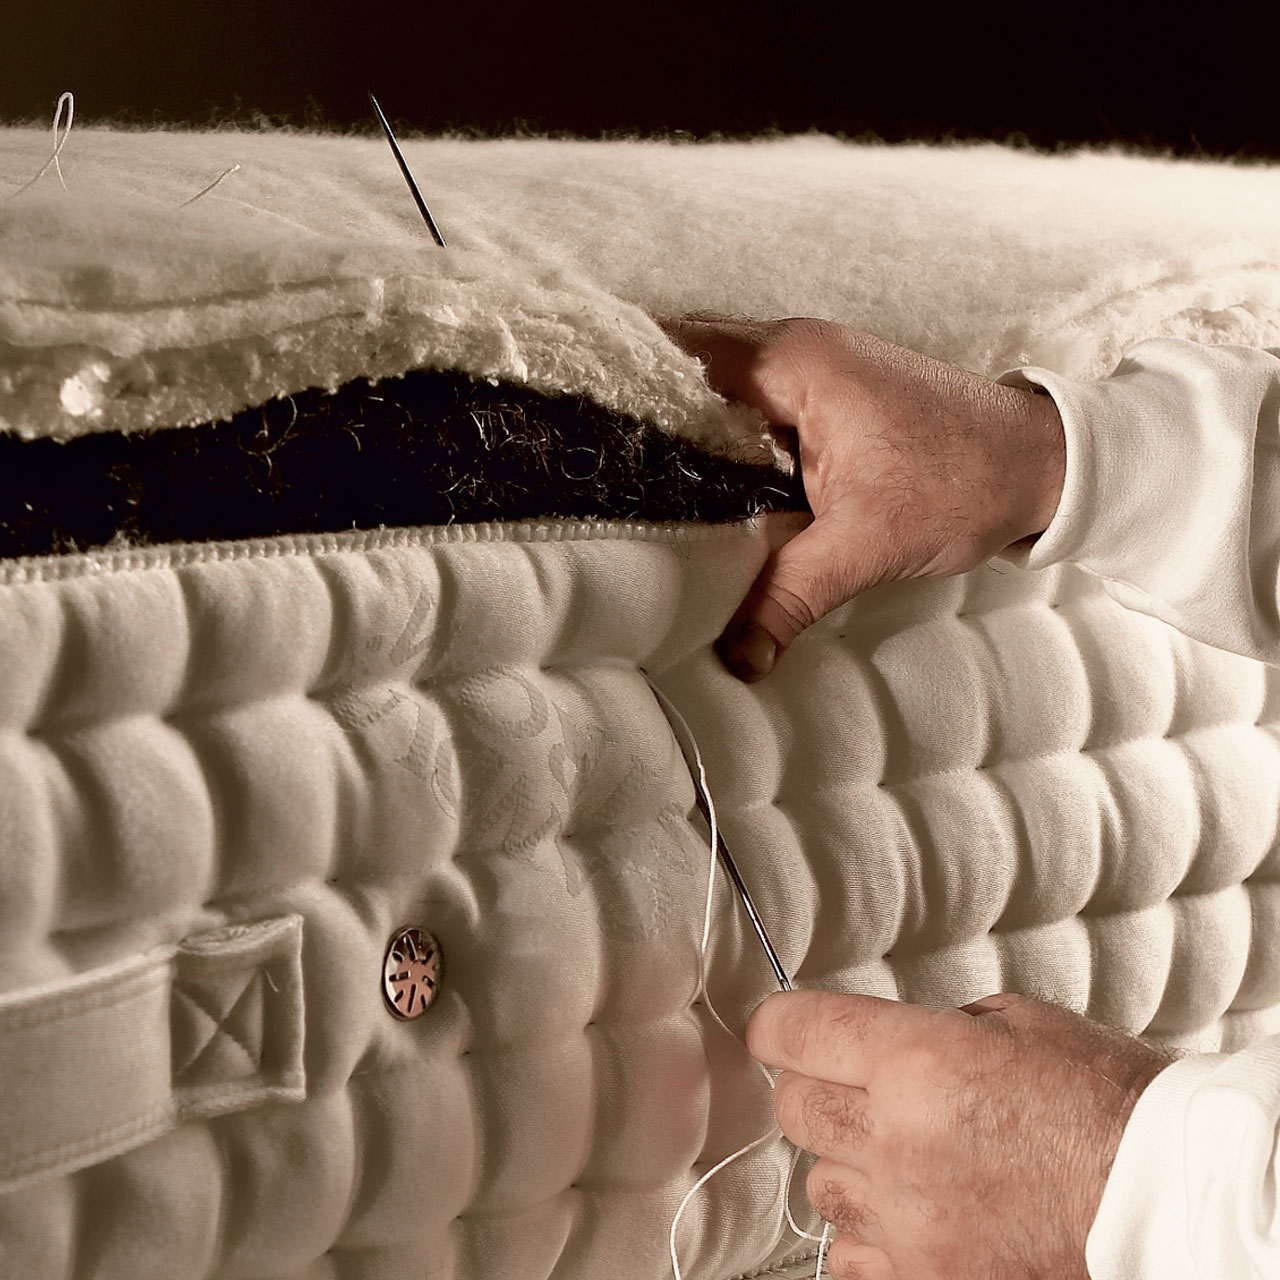 hotel mattress project - hotelier academy